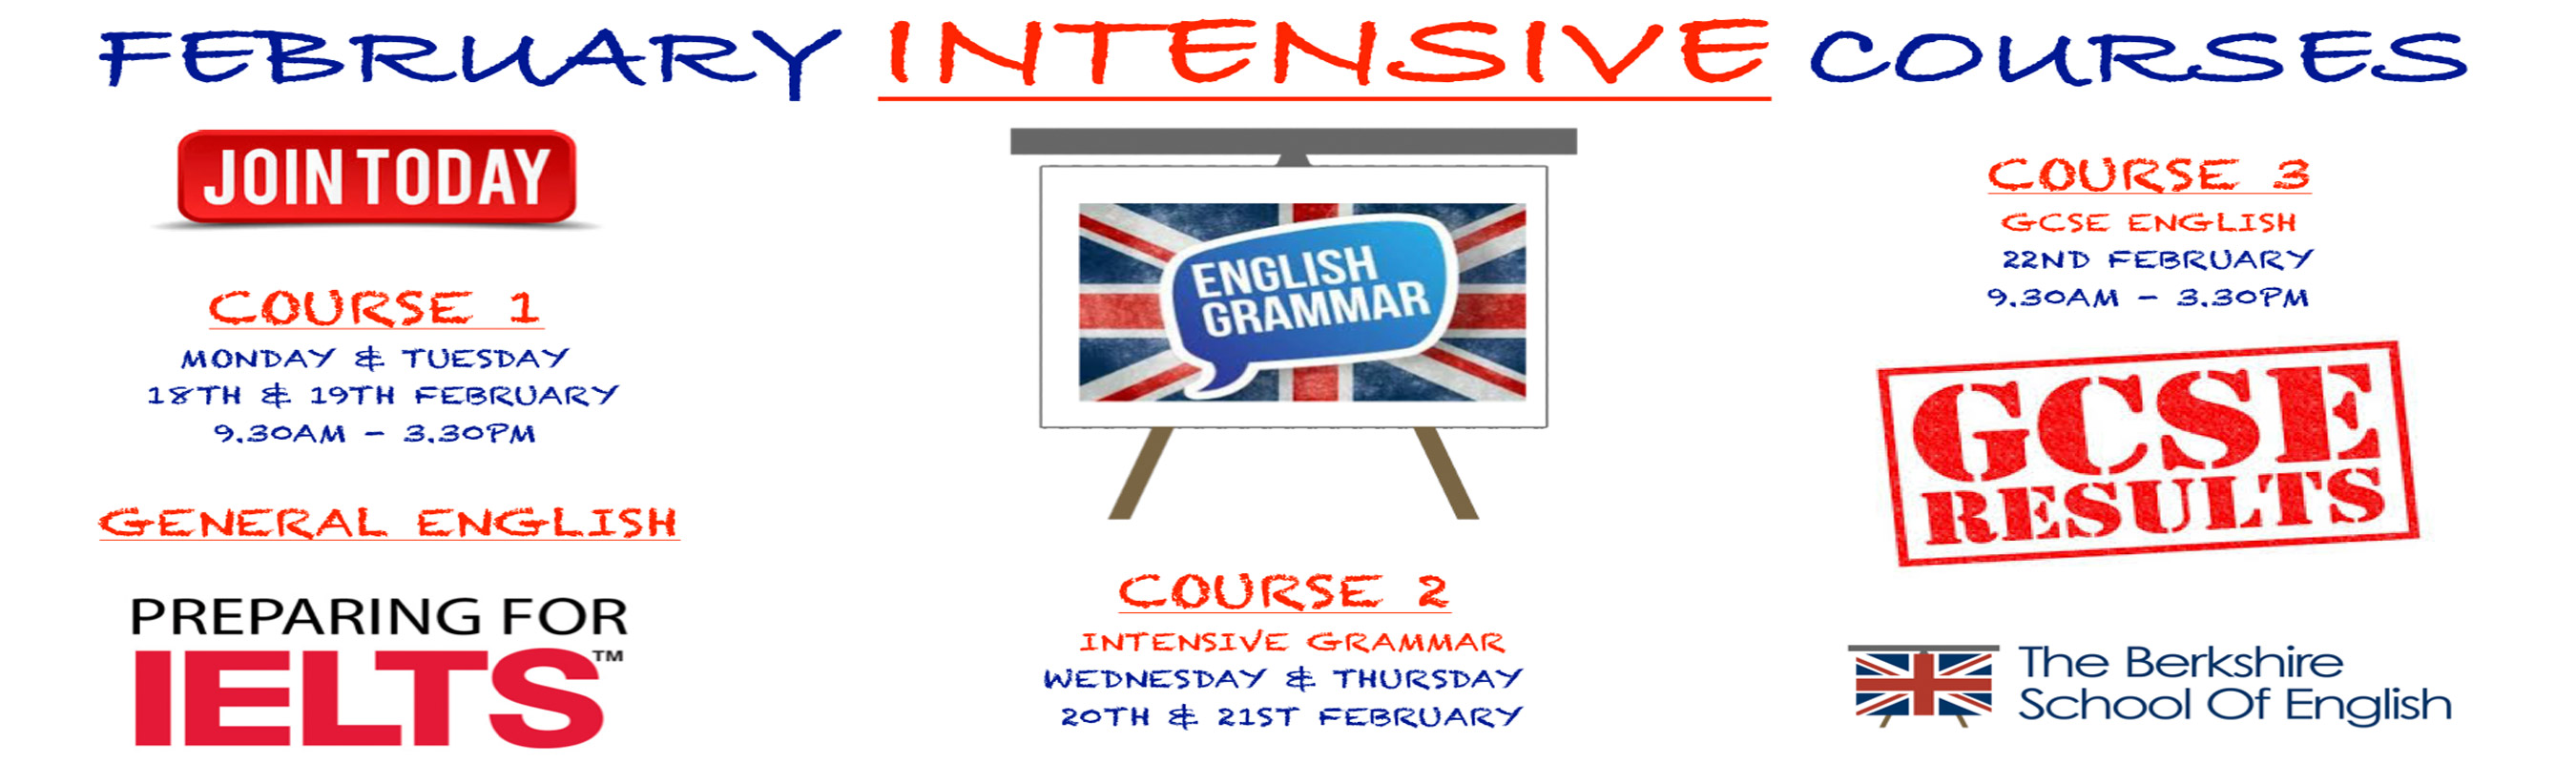 LEARN ENGLISH - Intensive Courses in February